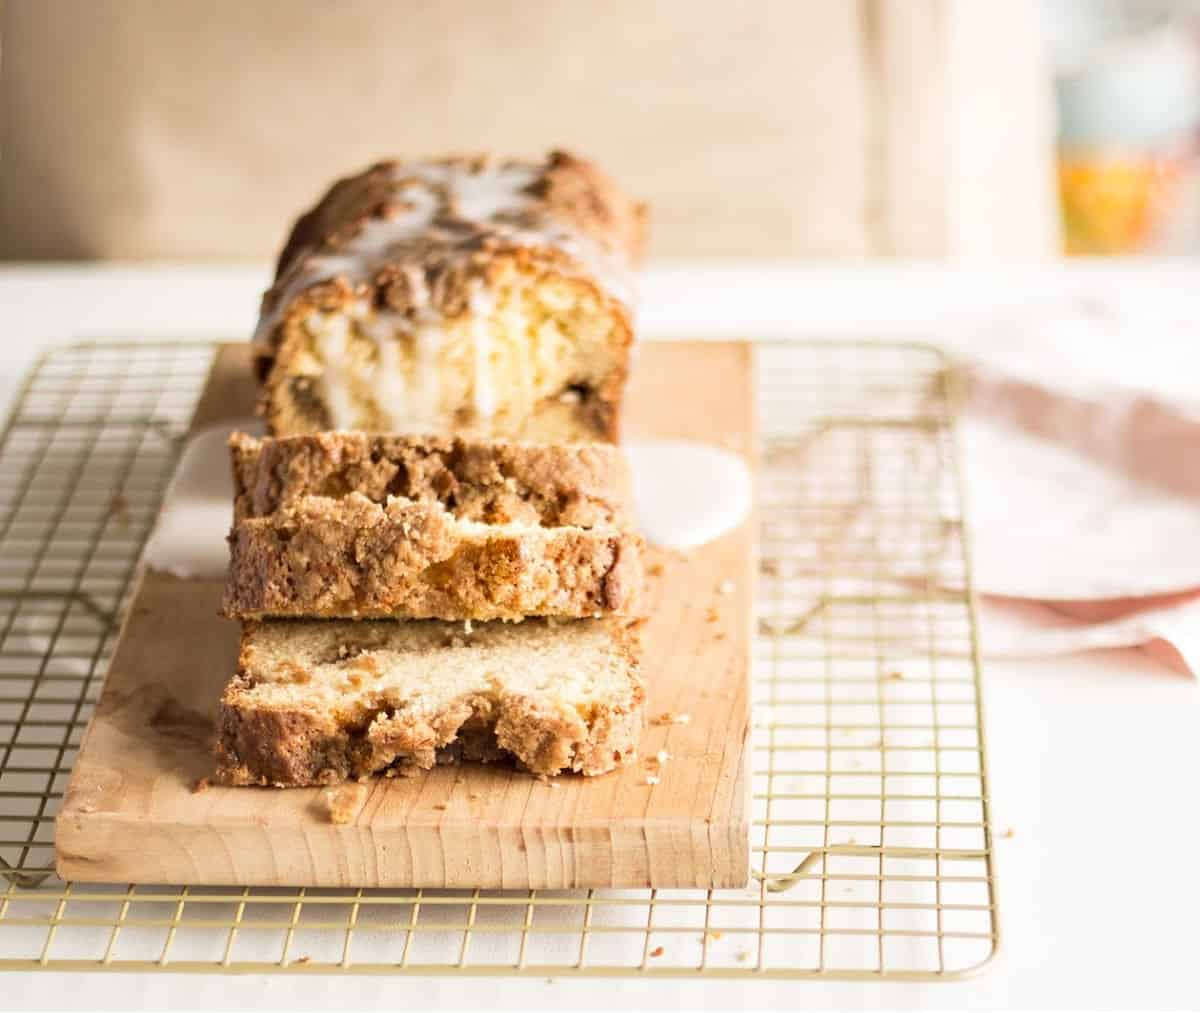 Metal rack with glazed coffee cake loaf on a wooden board, pink napkin beside it